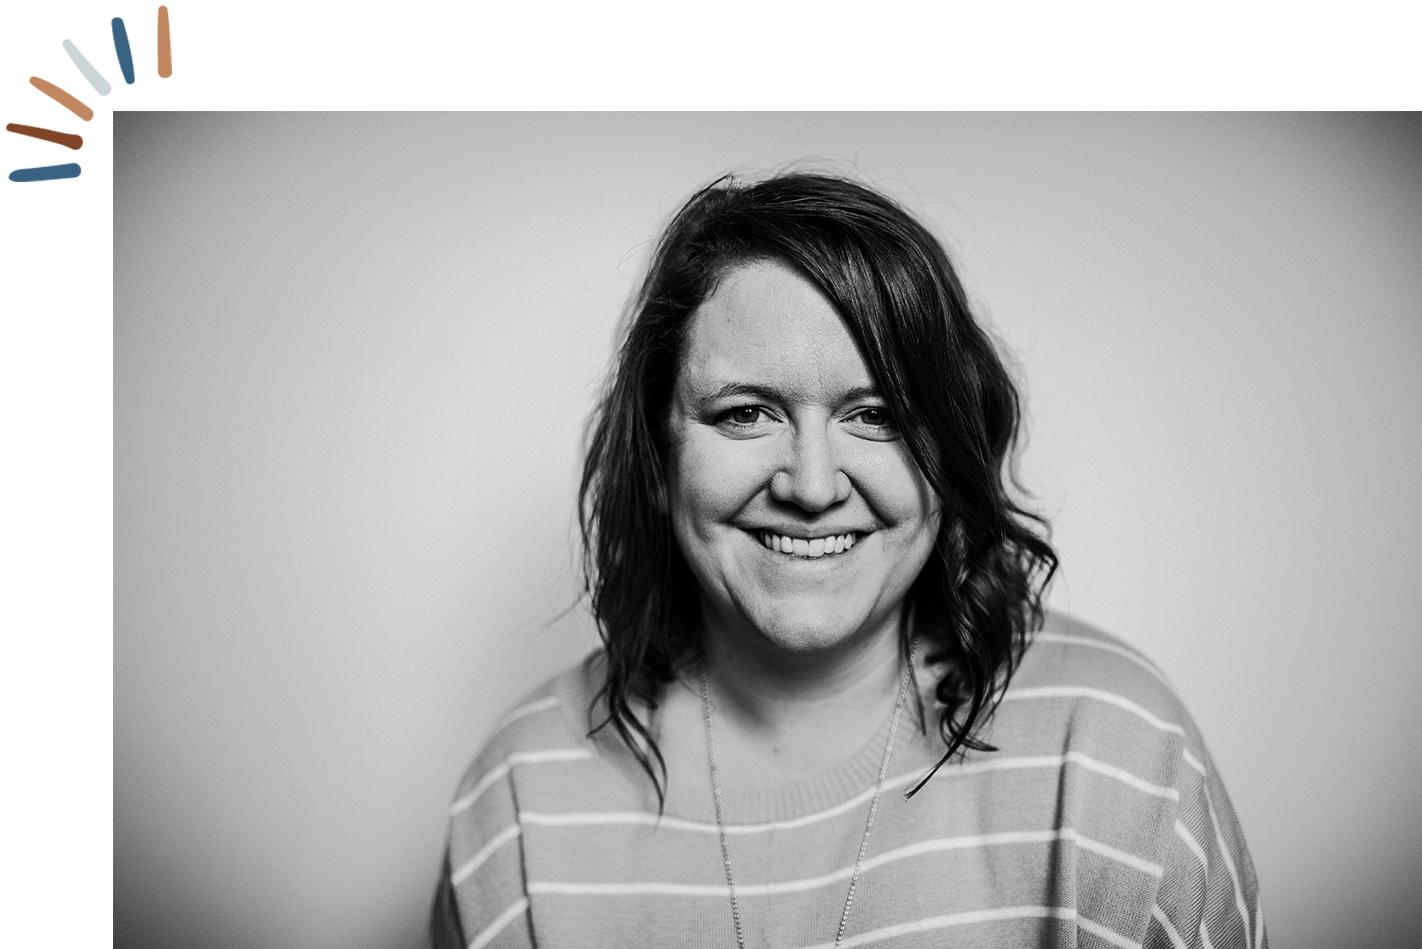 I'm Courtney Holmes, and I draw from my own experience of being a mum to create visual stories of your family life that matter most to you. -